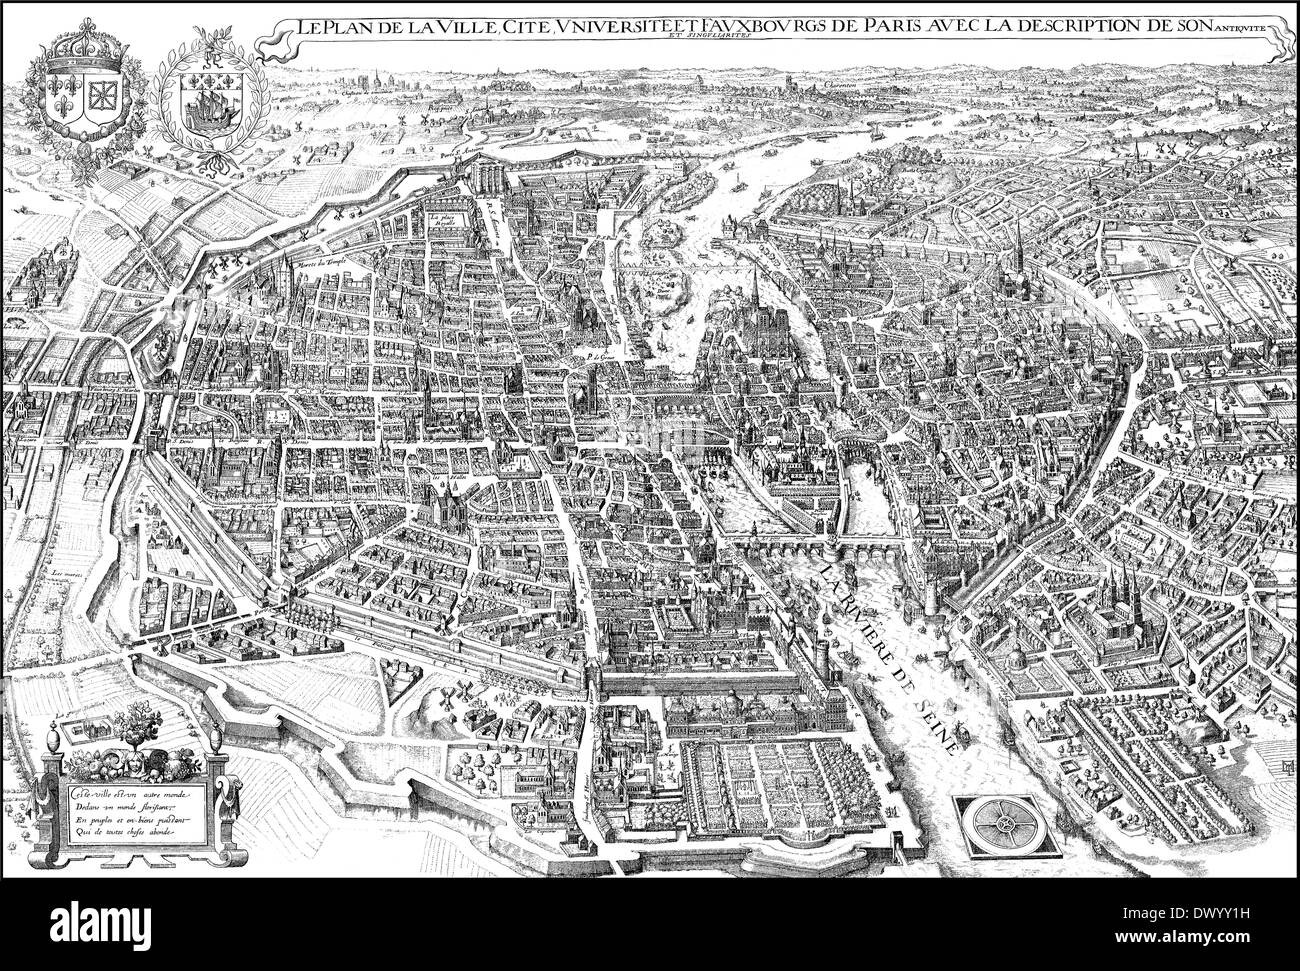 Historical cityscape, Paris, France, Europe, 18th Century, - Stock Image